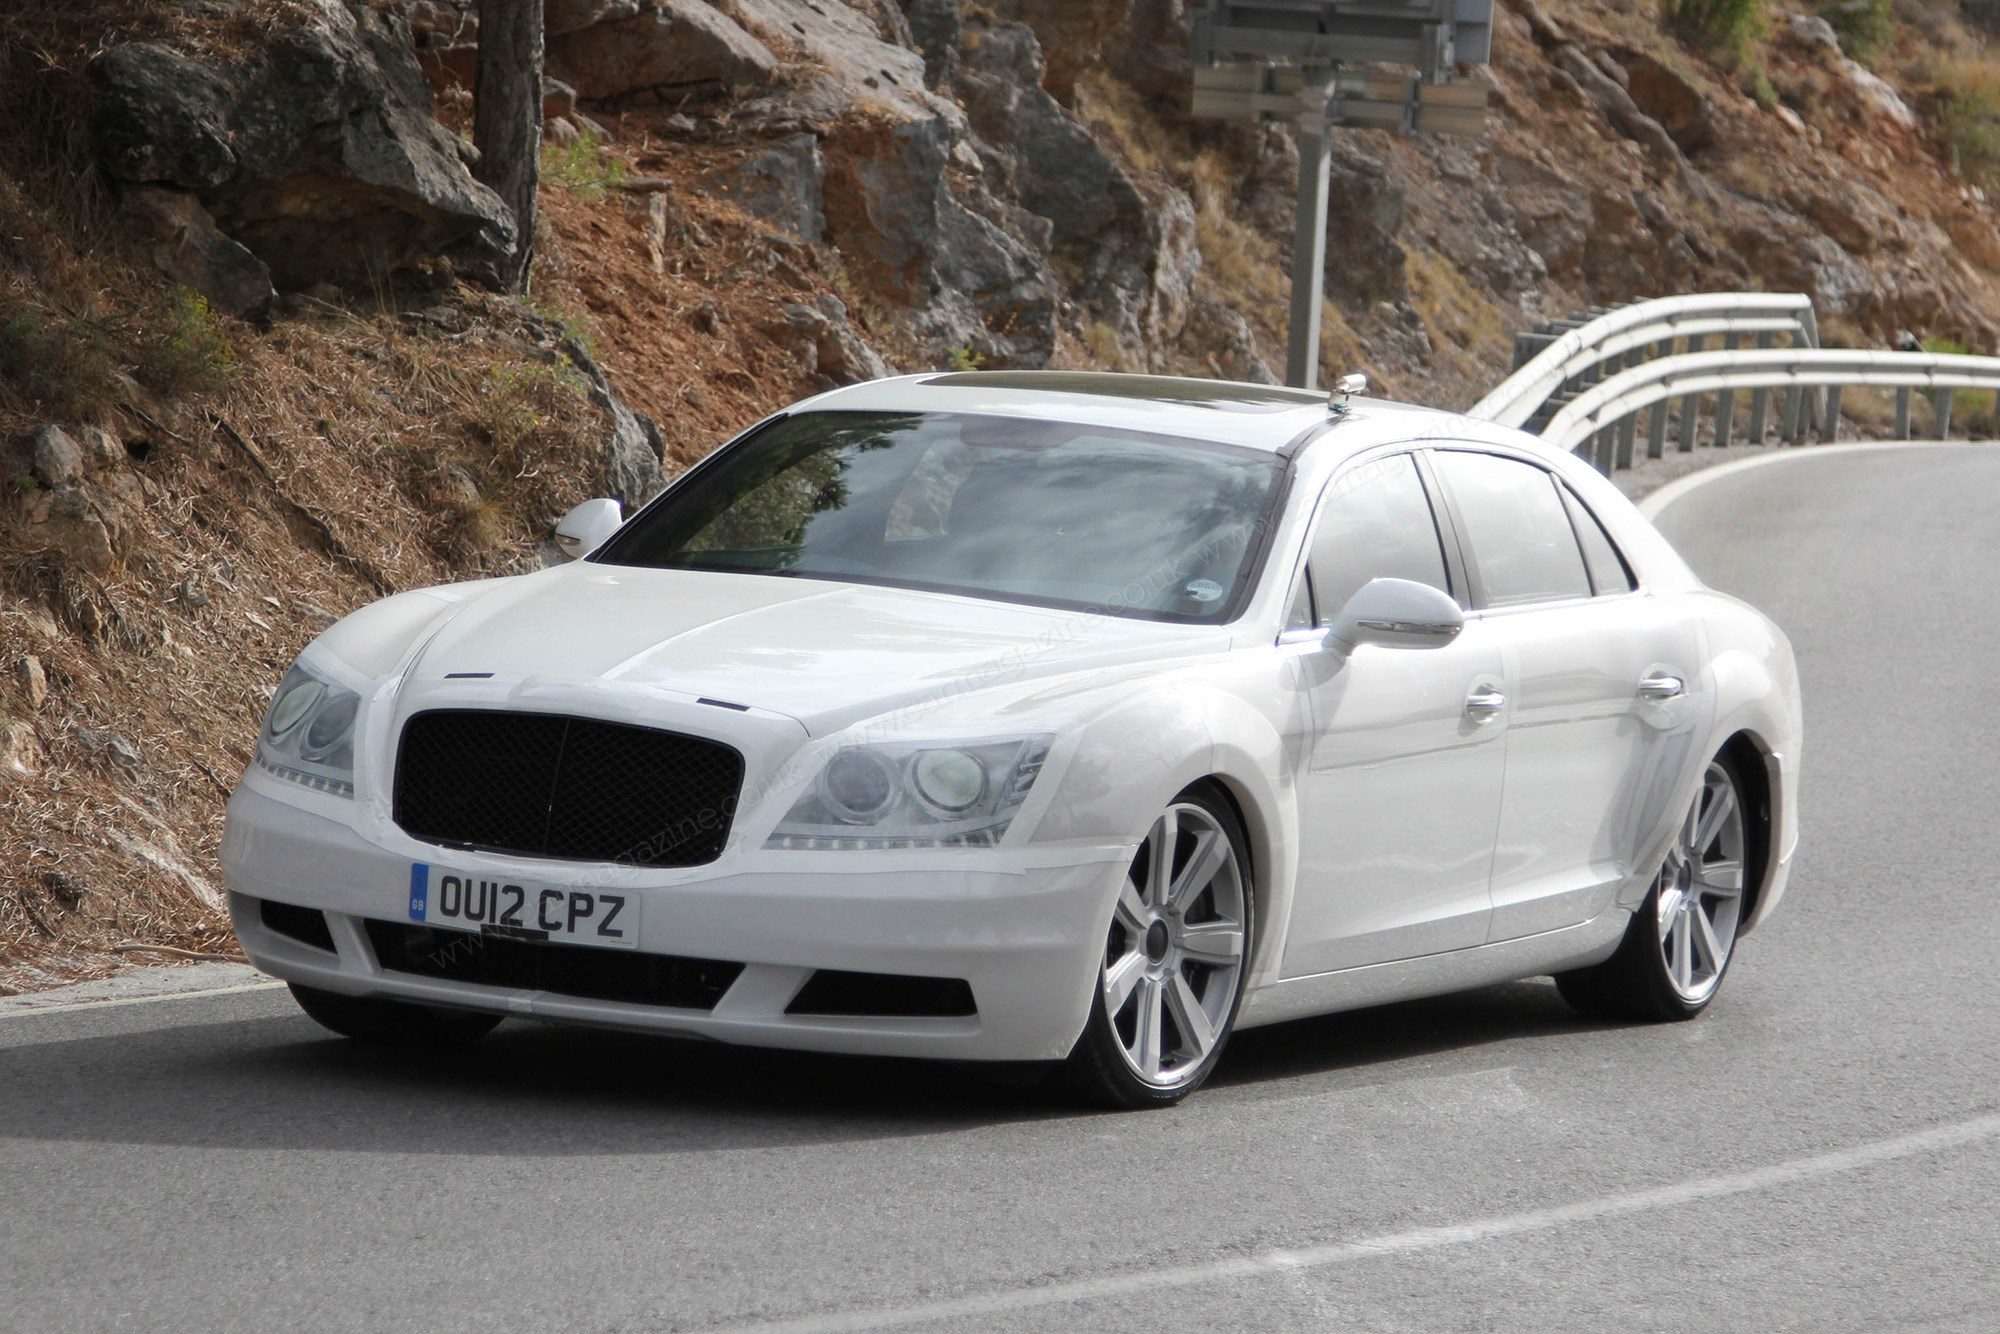 The Art Of Car Disguise Prototype Camouflage Decoded Magazine Click Here For A Photograph Cheekily Bentley Stuck Mercedes Grille On Front This 2012 Flying Spur To Put Spies Off Scent